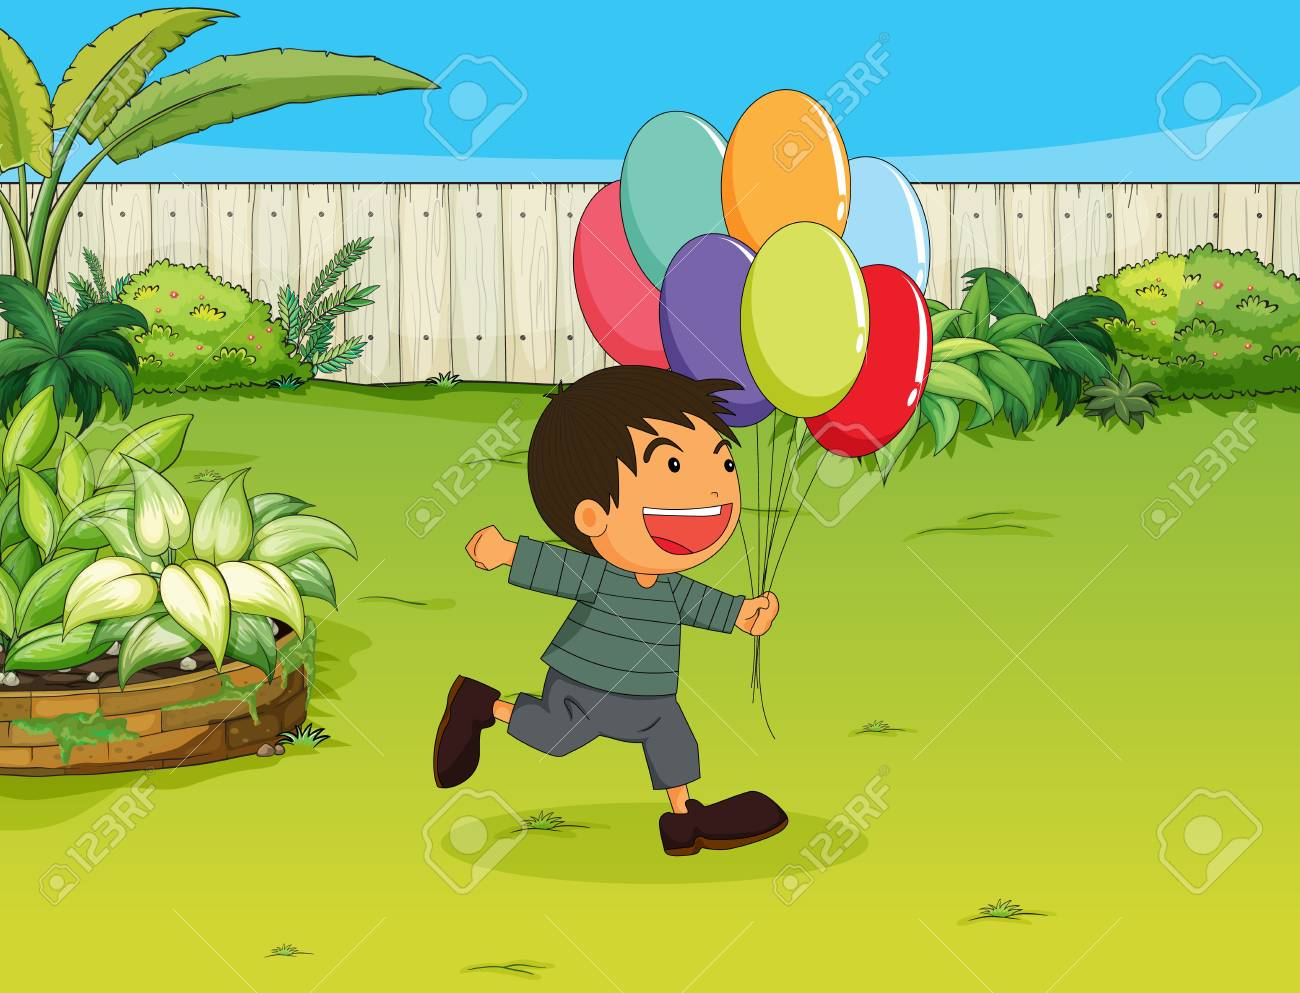 Illustration of a smiling boy with balloons in a garden Stock Vector - 17031281